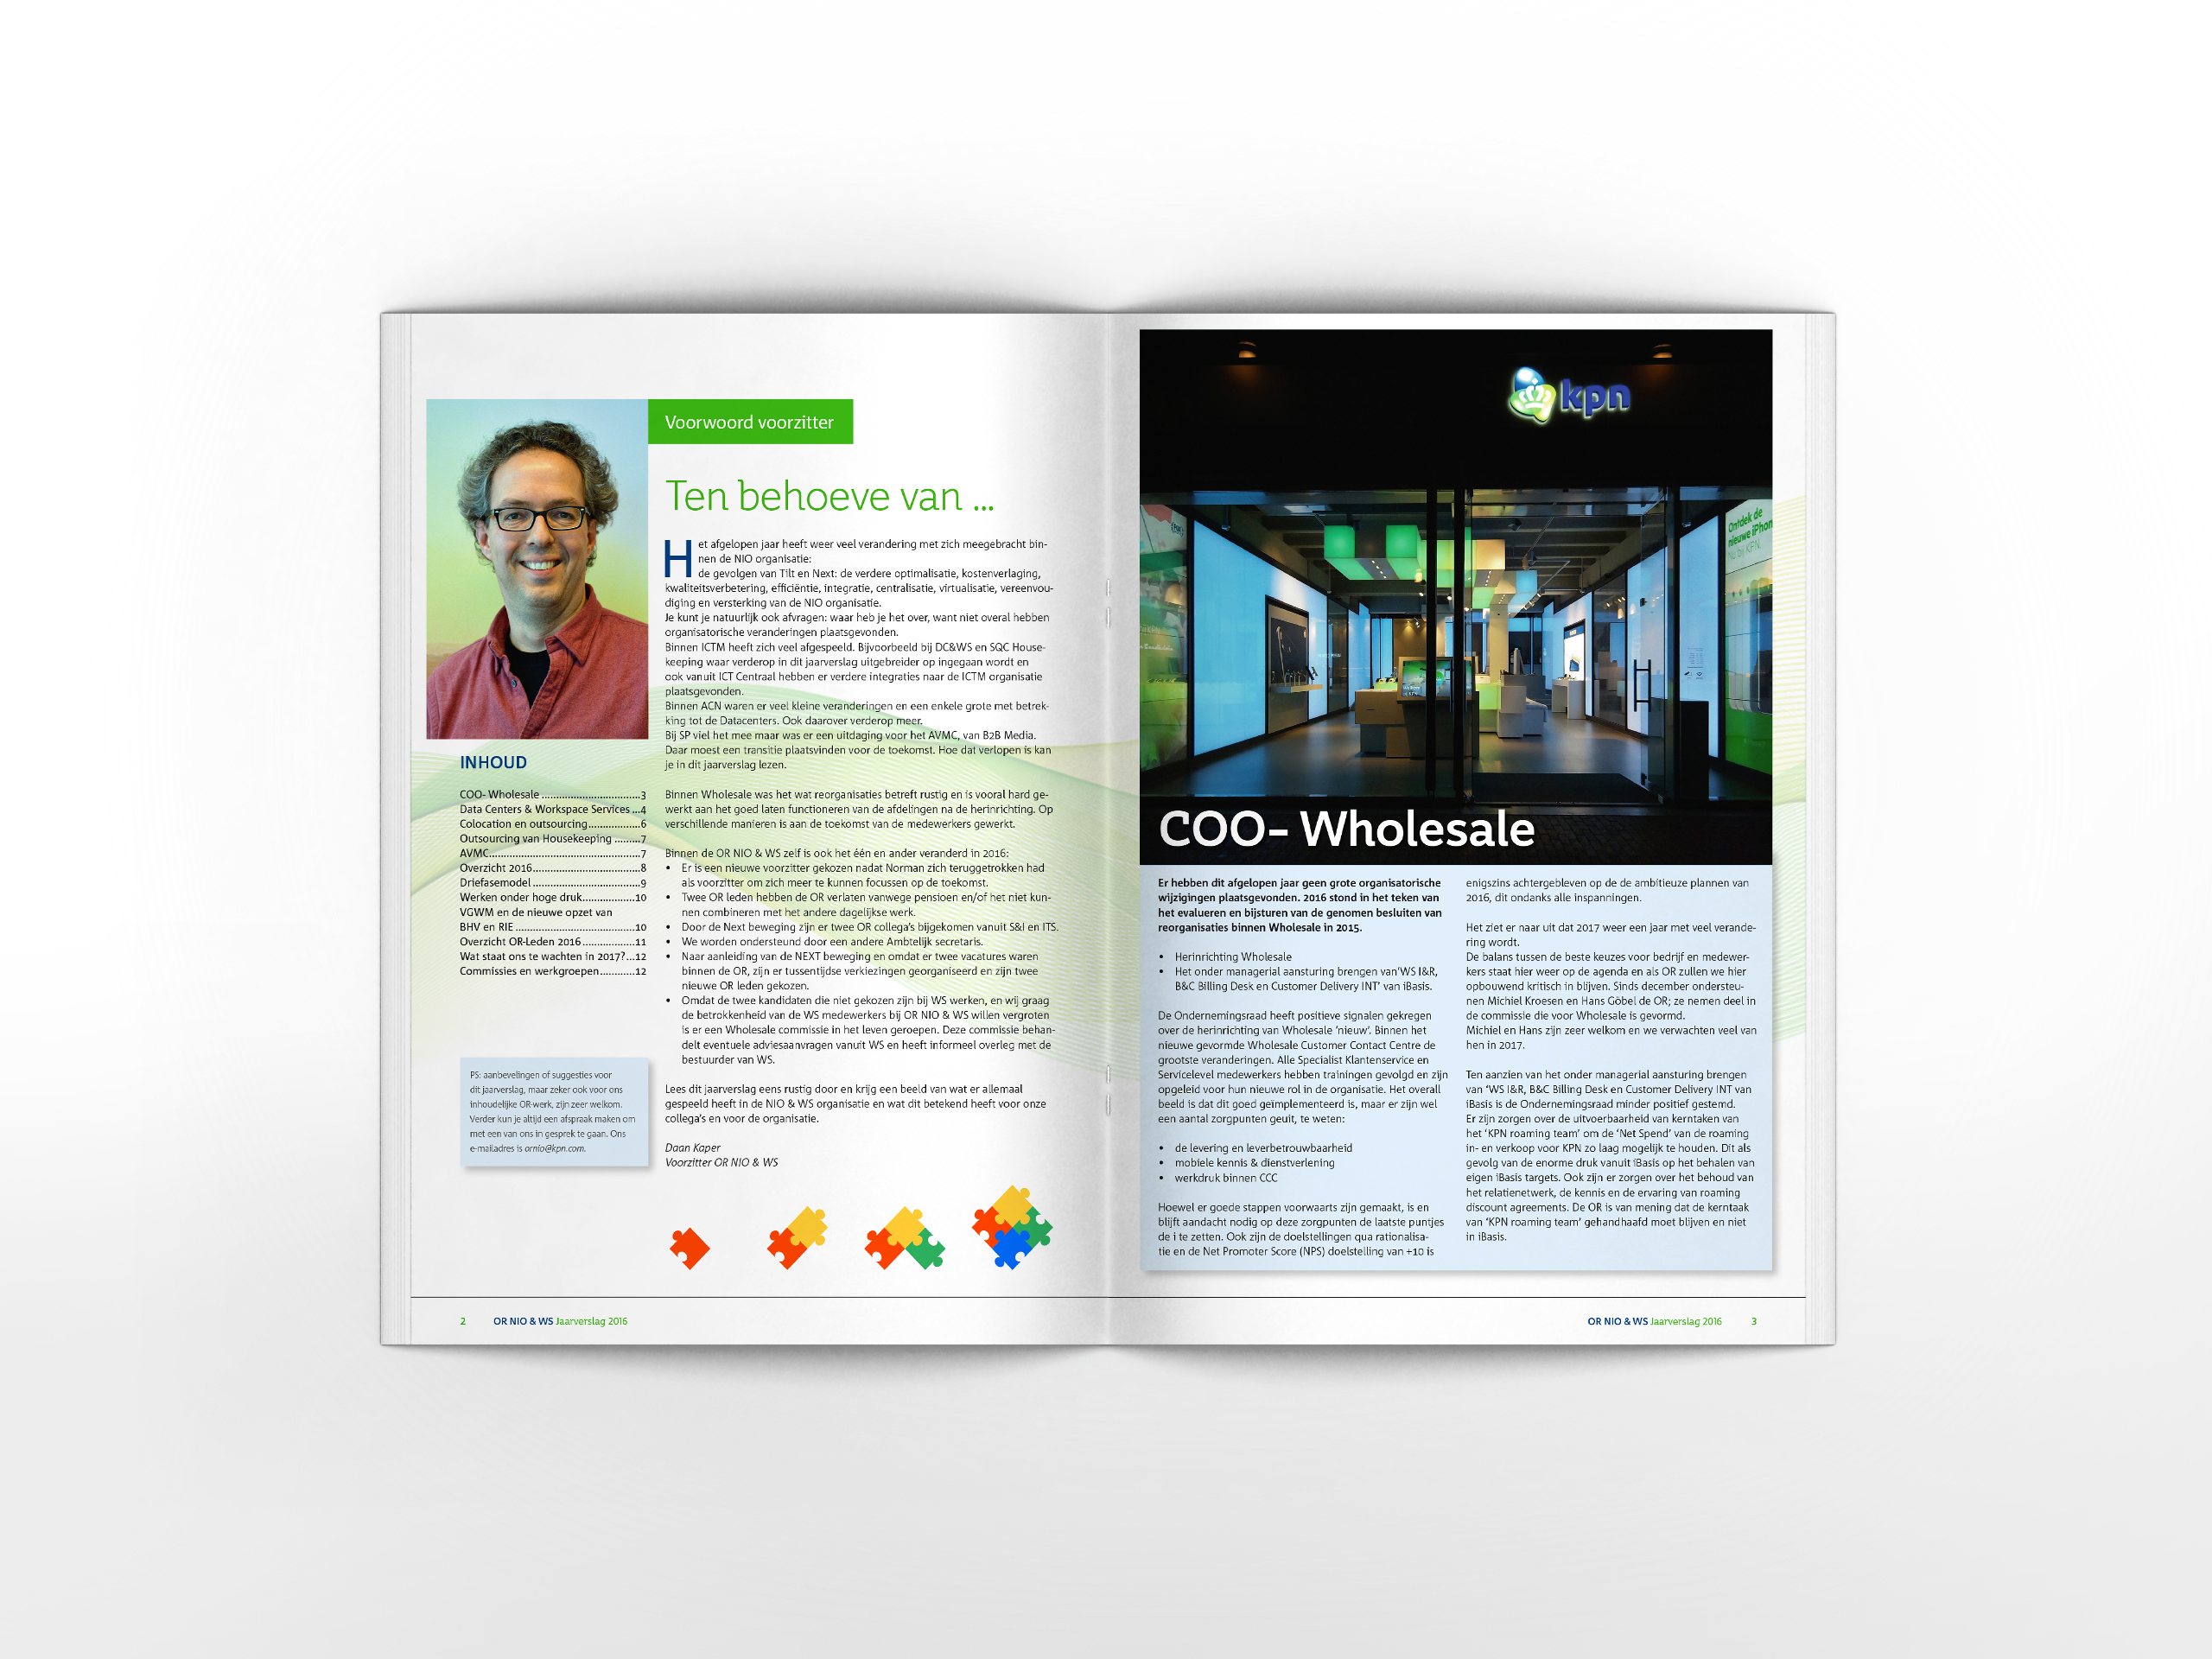 KPN – OR NetCo & WS ANNUAL 2016